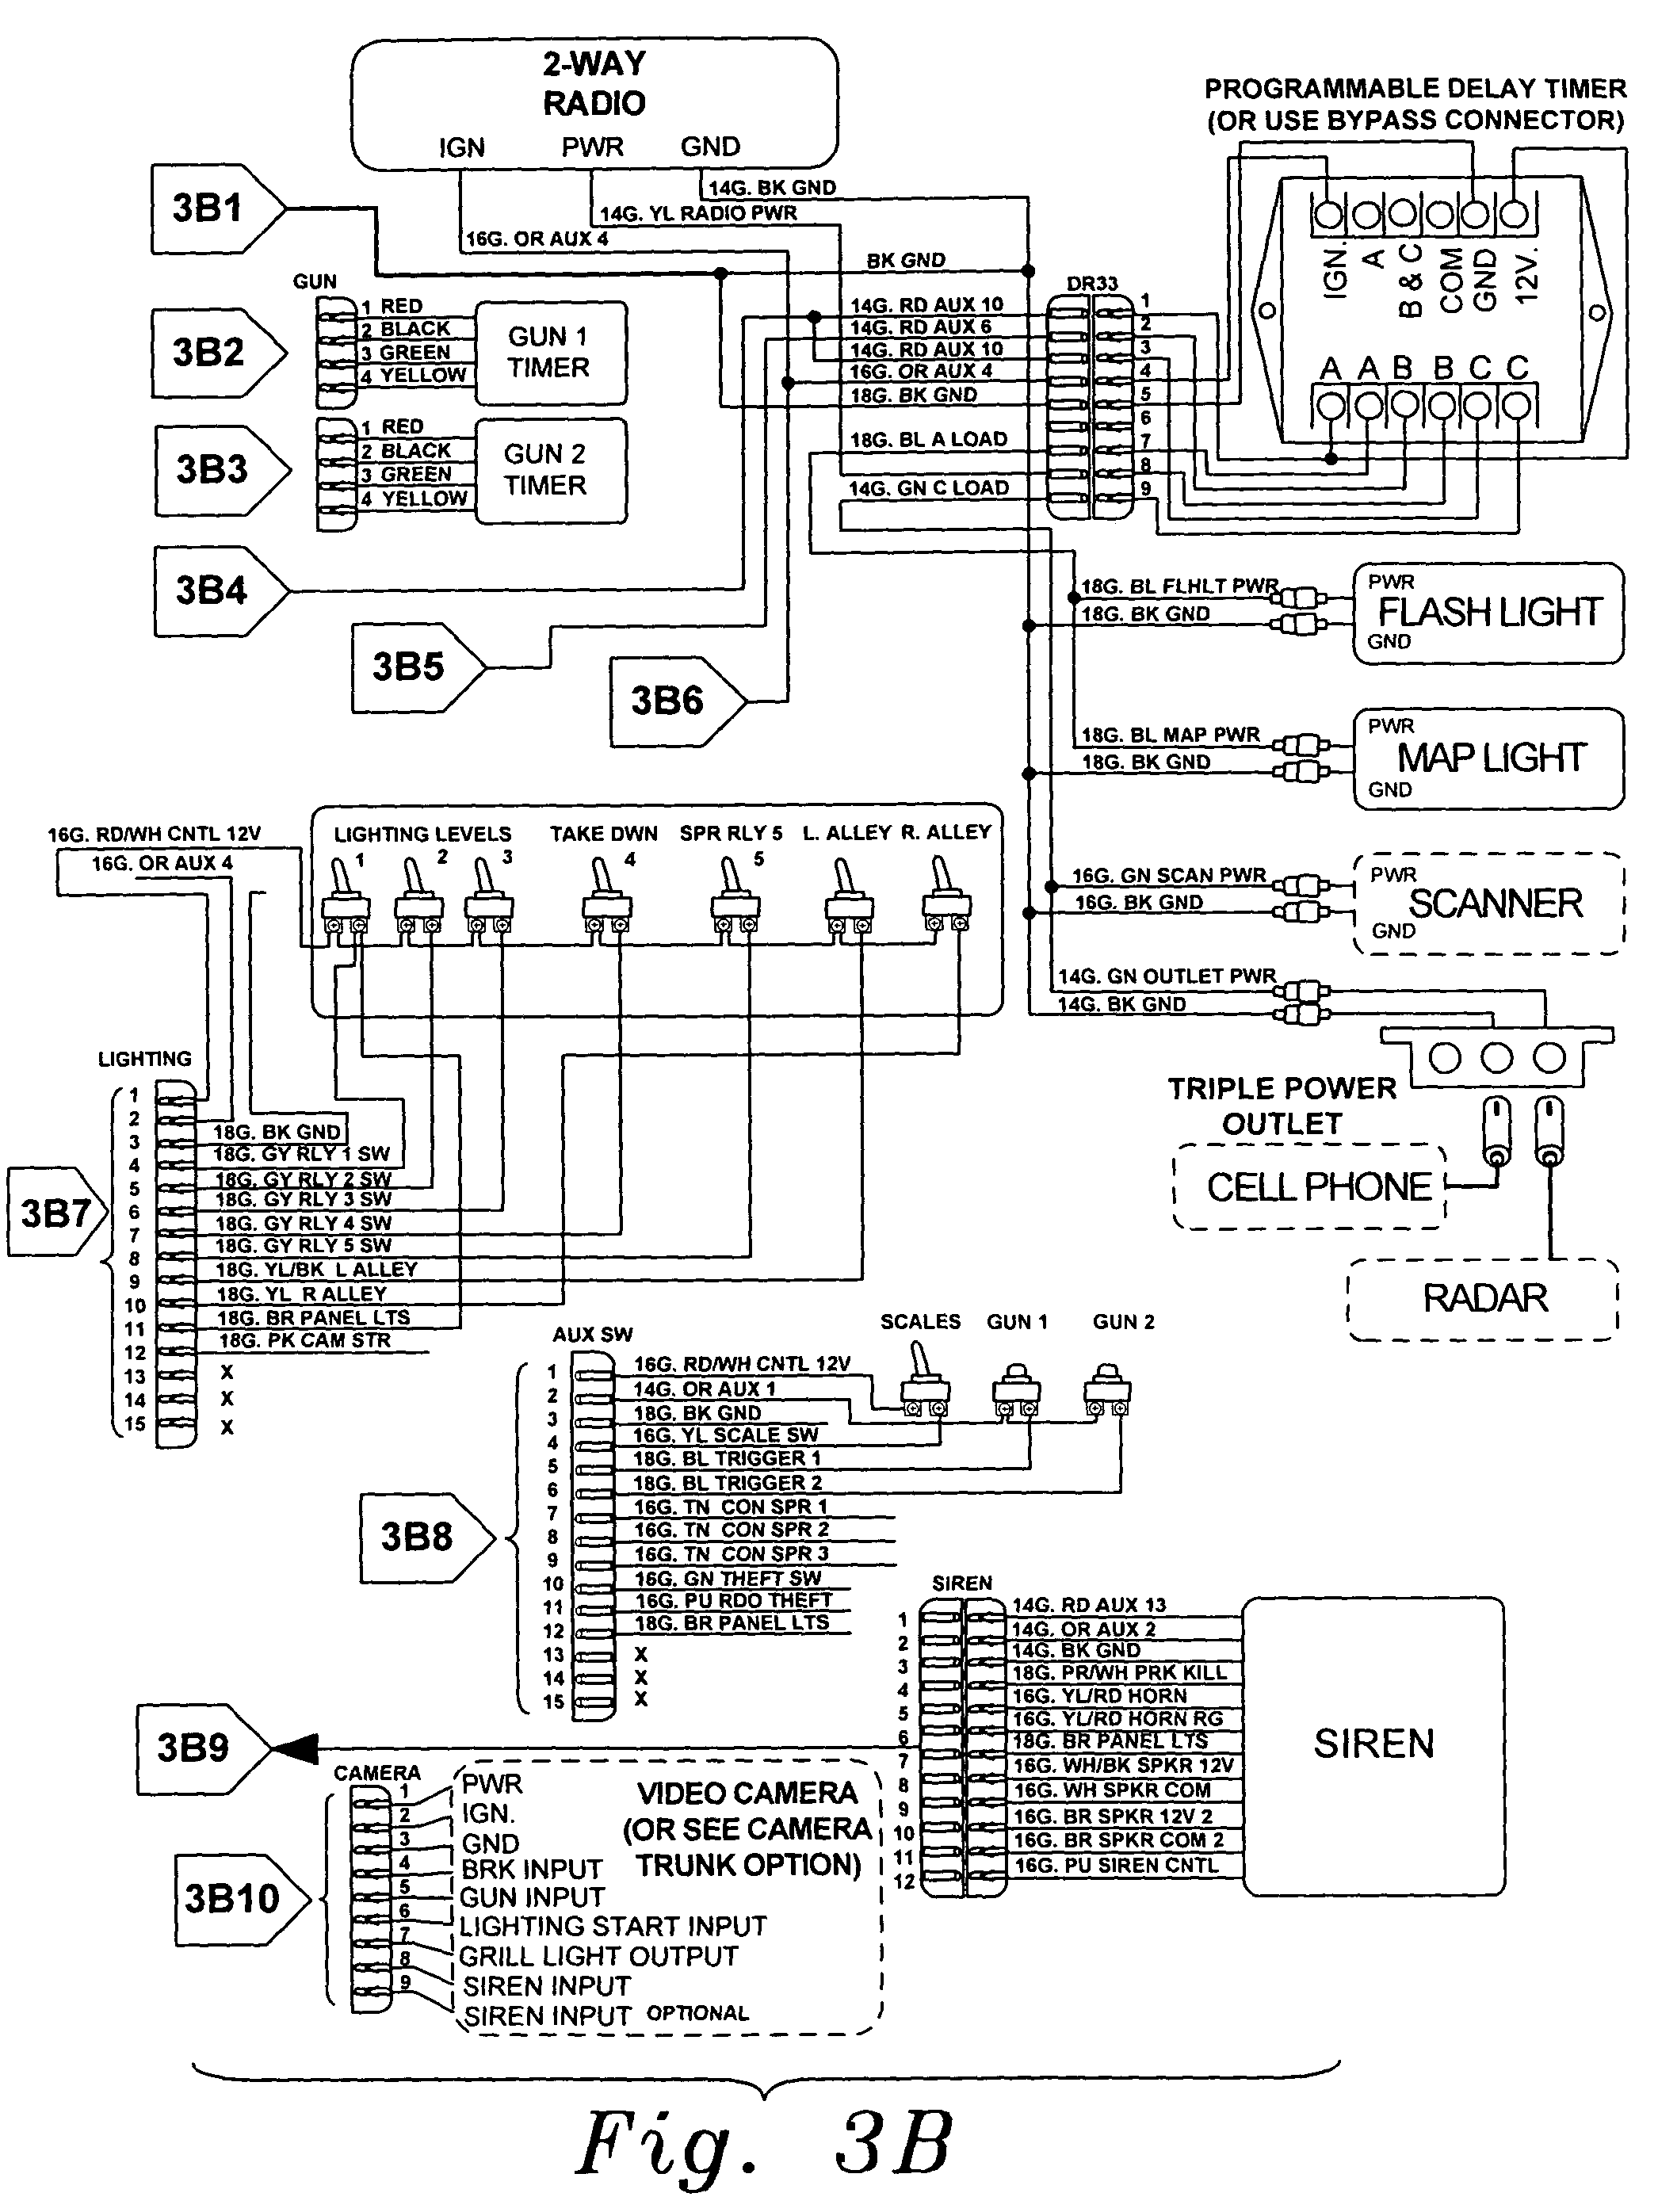 US07342325 20080311 D00005 code 3 siren wiring diagram car alarm circuit diagram \u2022 wiring  at creativeand.co